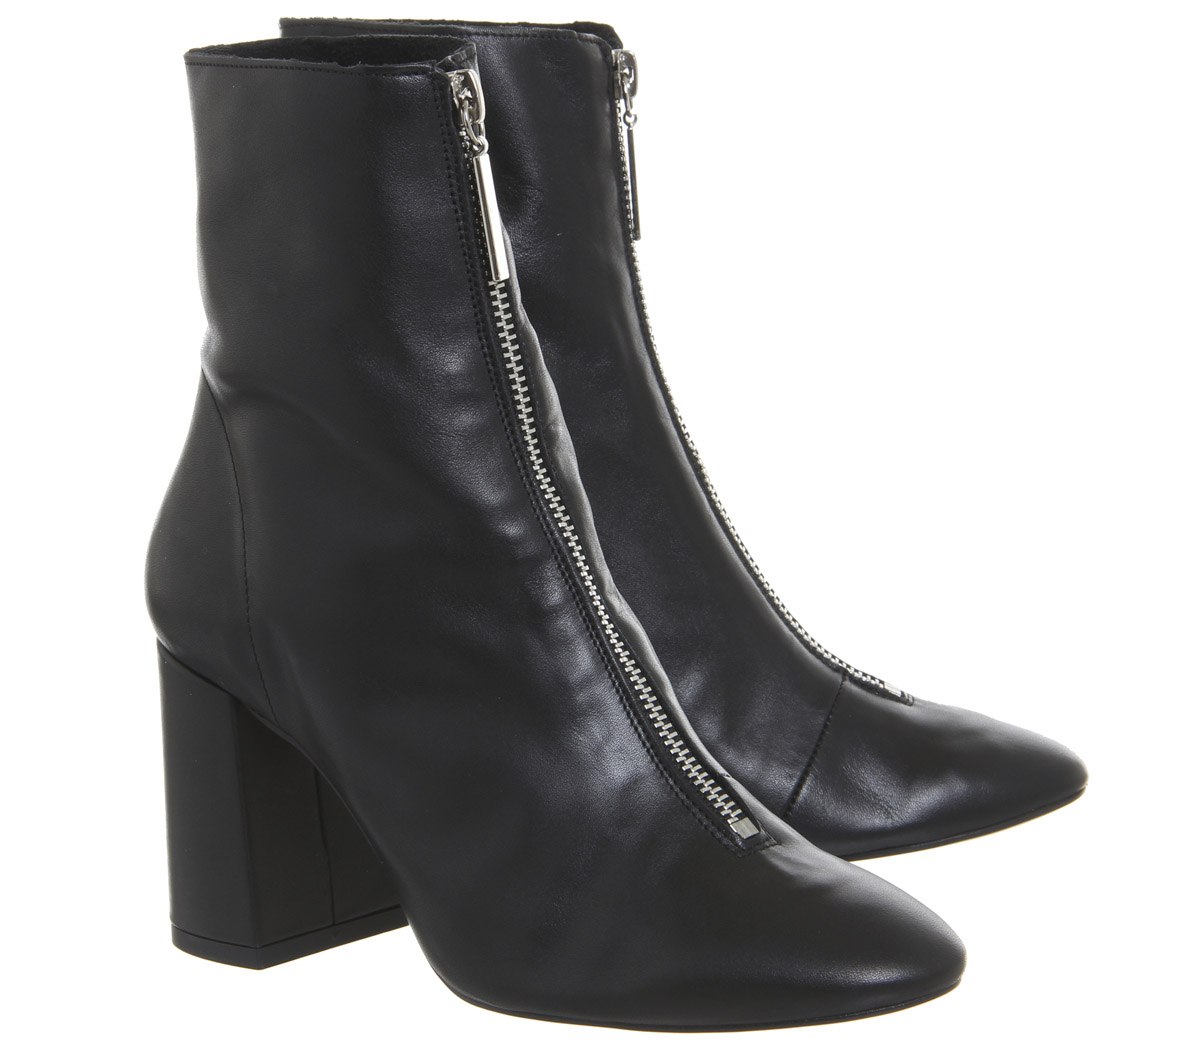 Damenschuhe Office All Sorts Front Zip Stiefel Stiefel SOFT BLACK LEATHER Stiefel Zip 04628c